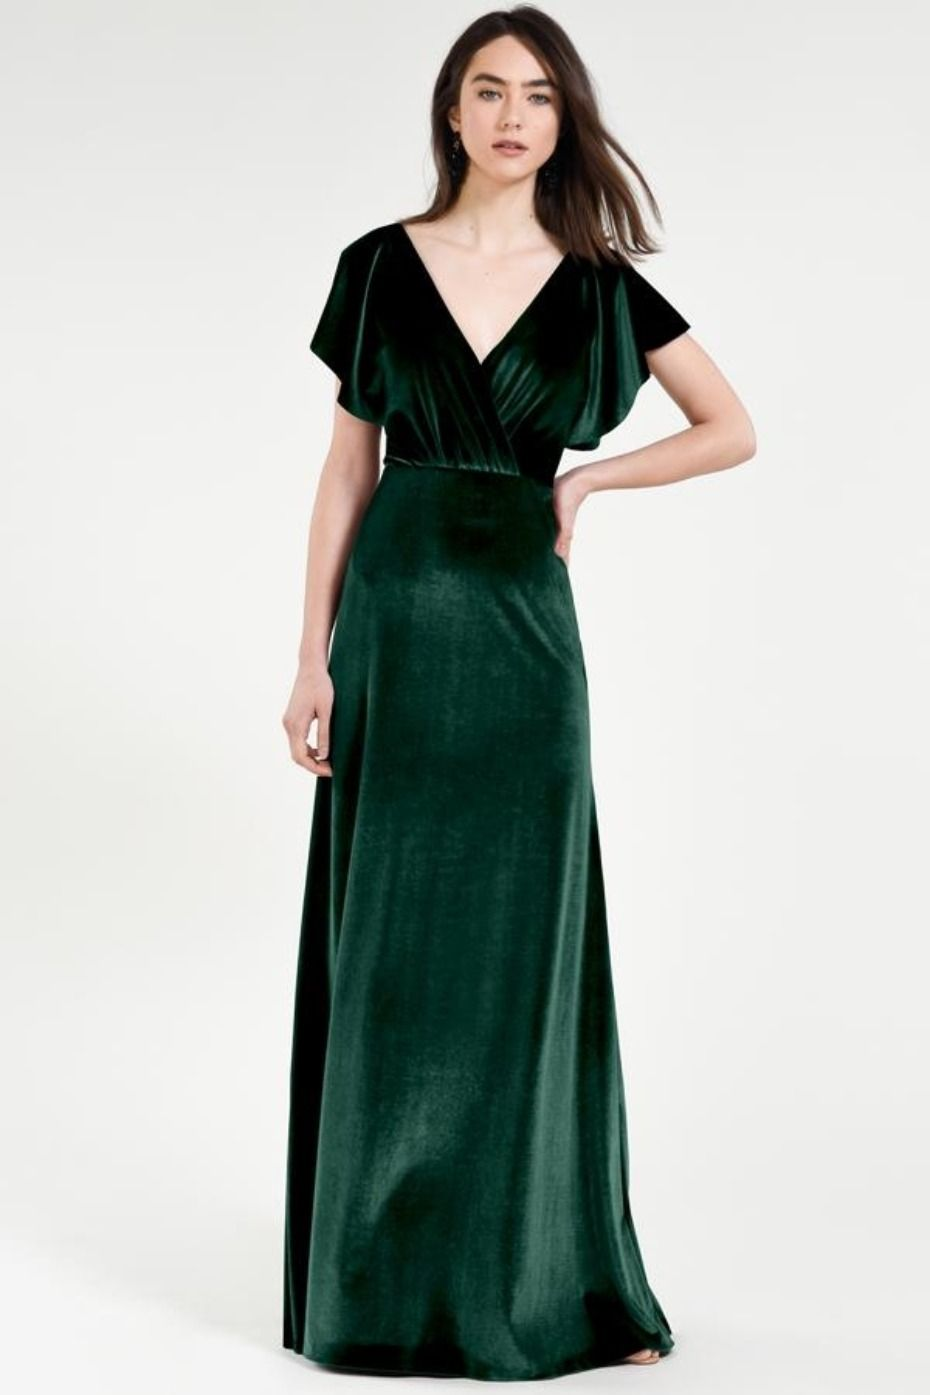 This Is Why You Say Yes To Velvet Bridesmaid Dresses Velvet Bridesmaid Dresses Jenny Yoo Bridesmaid Dress Green Wedding Dresses [ 1395 x 930 Pixel ]